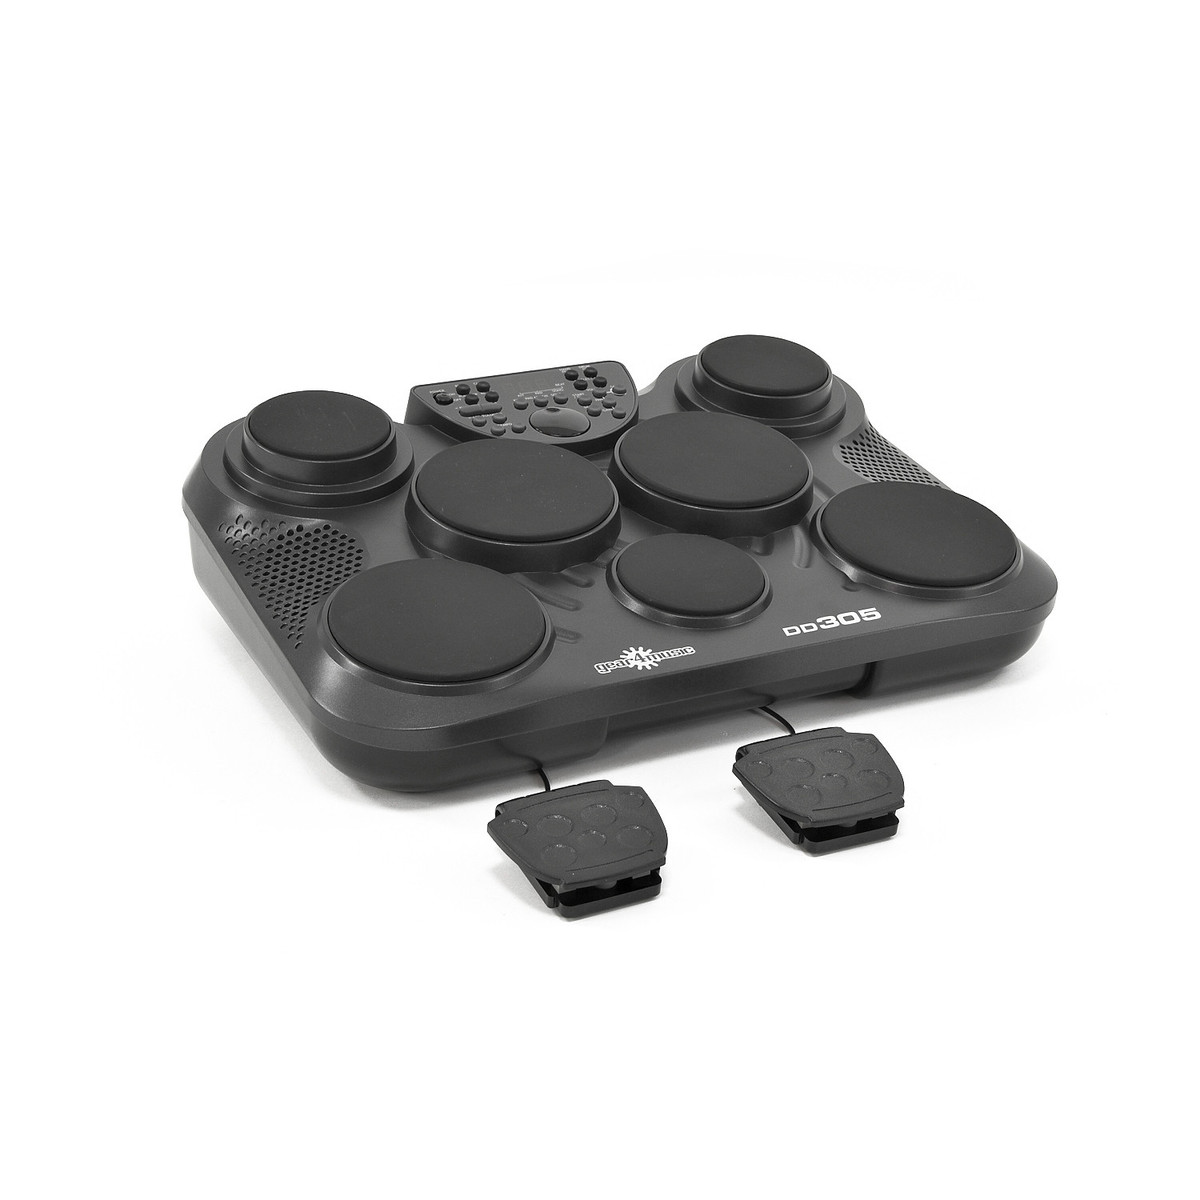 dd305 portable electronic drum pads by gear4music ex demo at. Black Bedroom Furniture Sets. Home Design Ideas